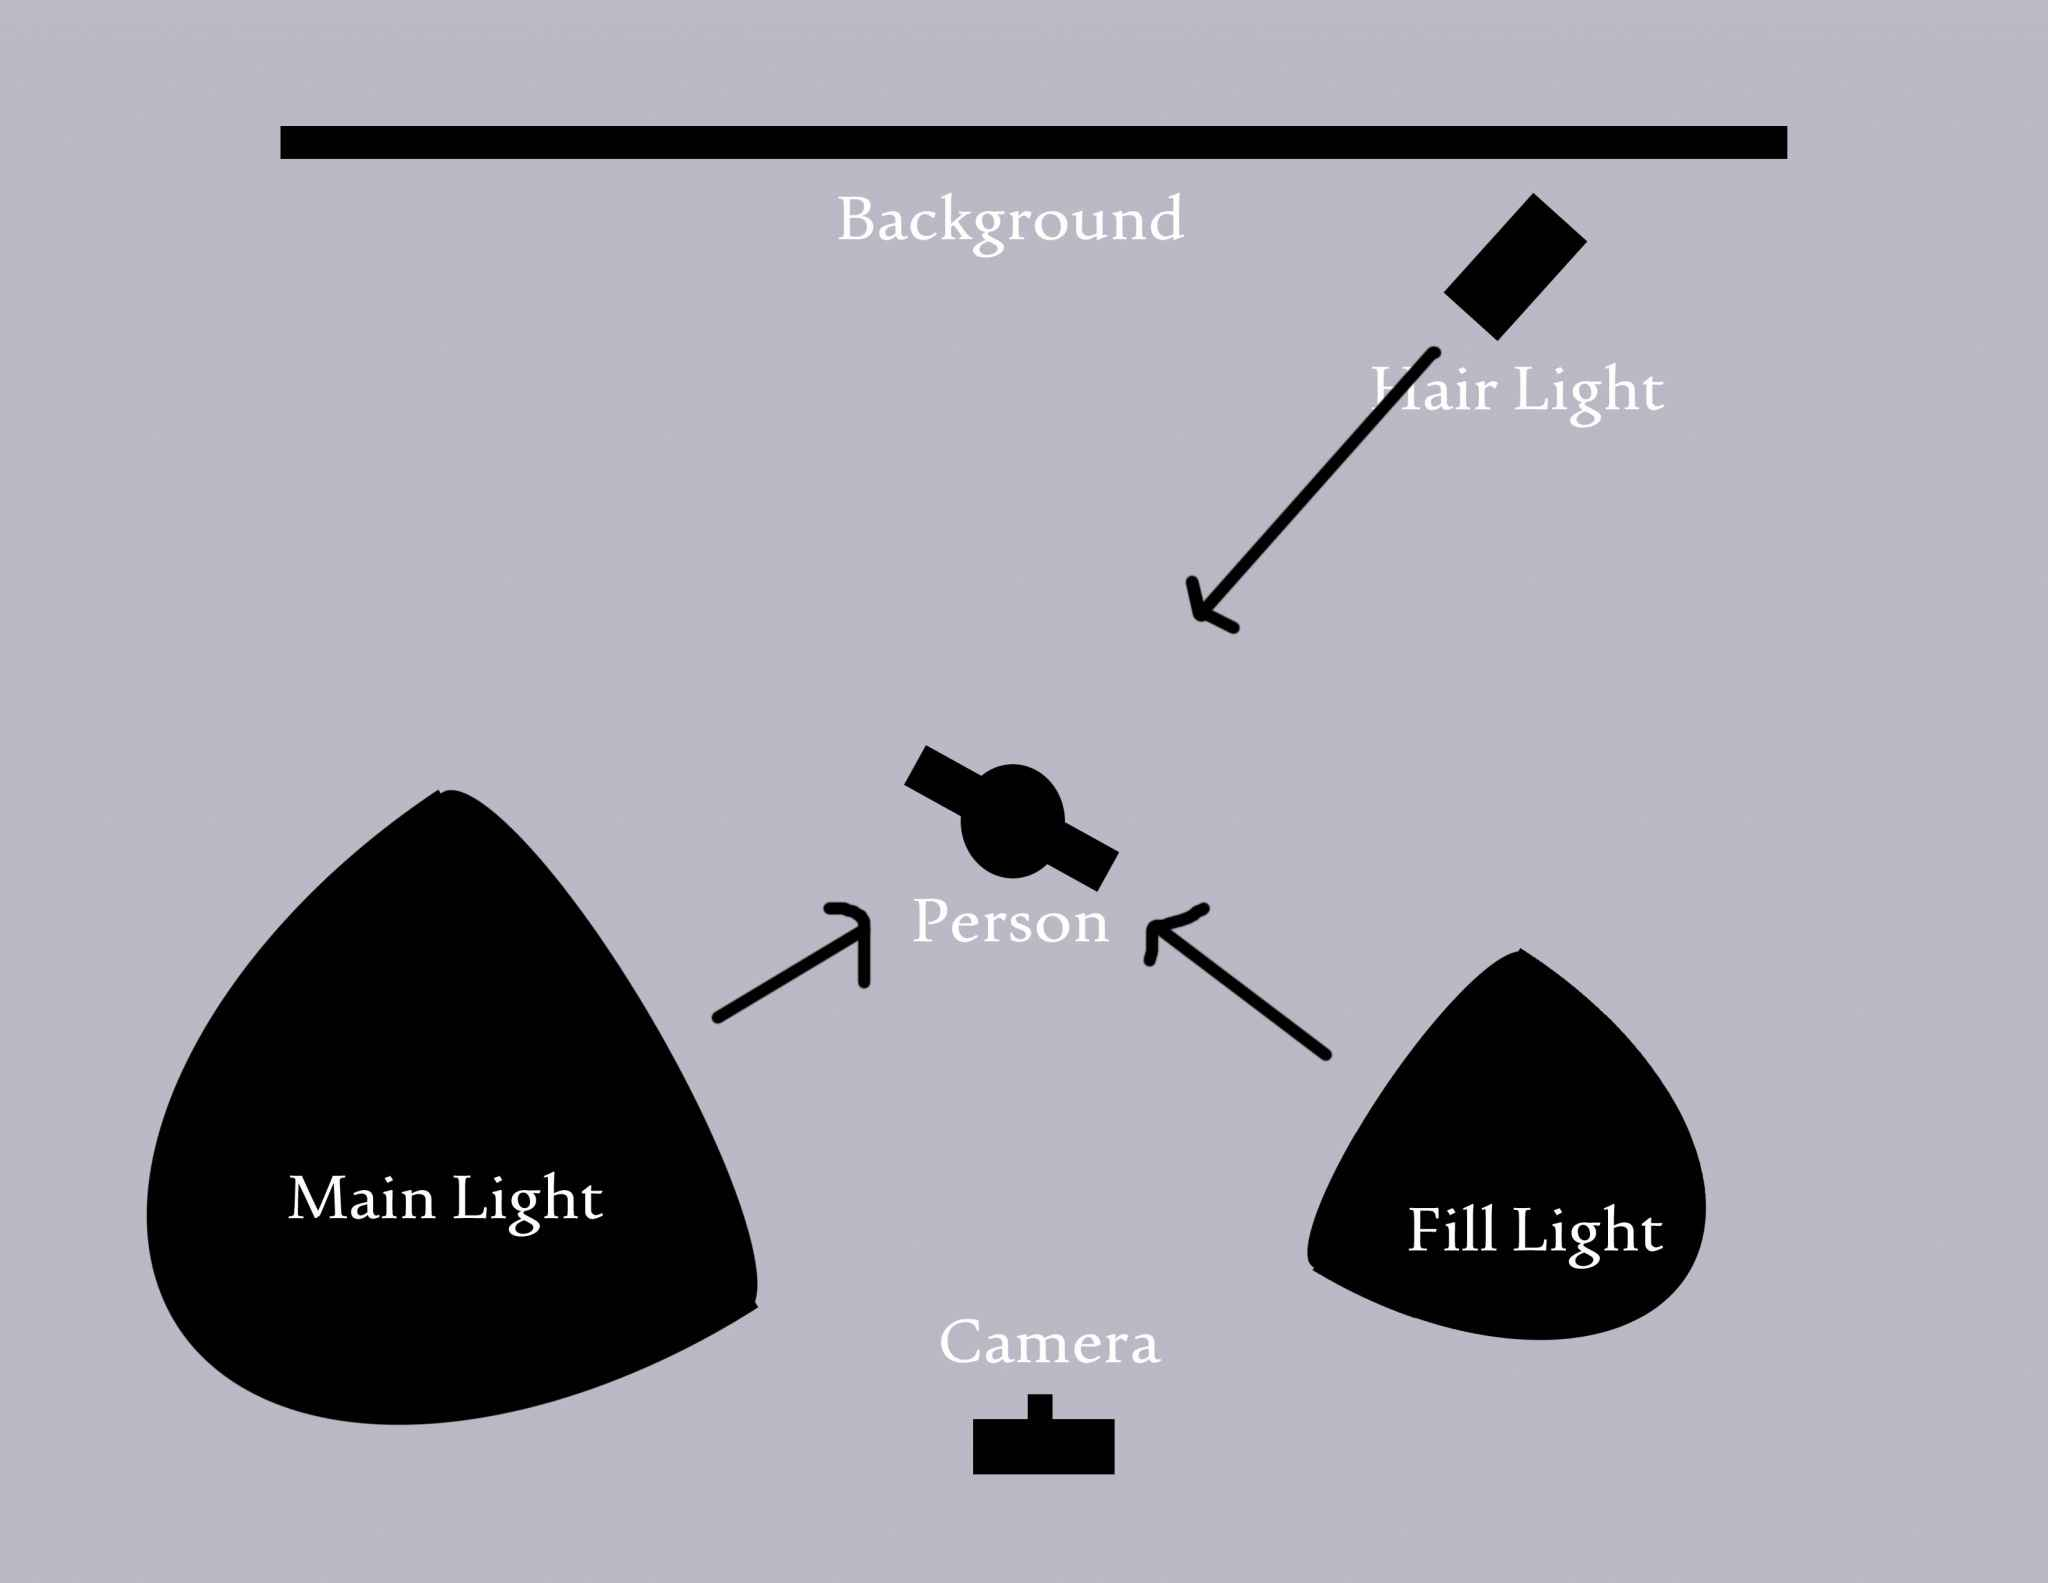 School Portraits - Lighting Diagram - Processing